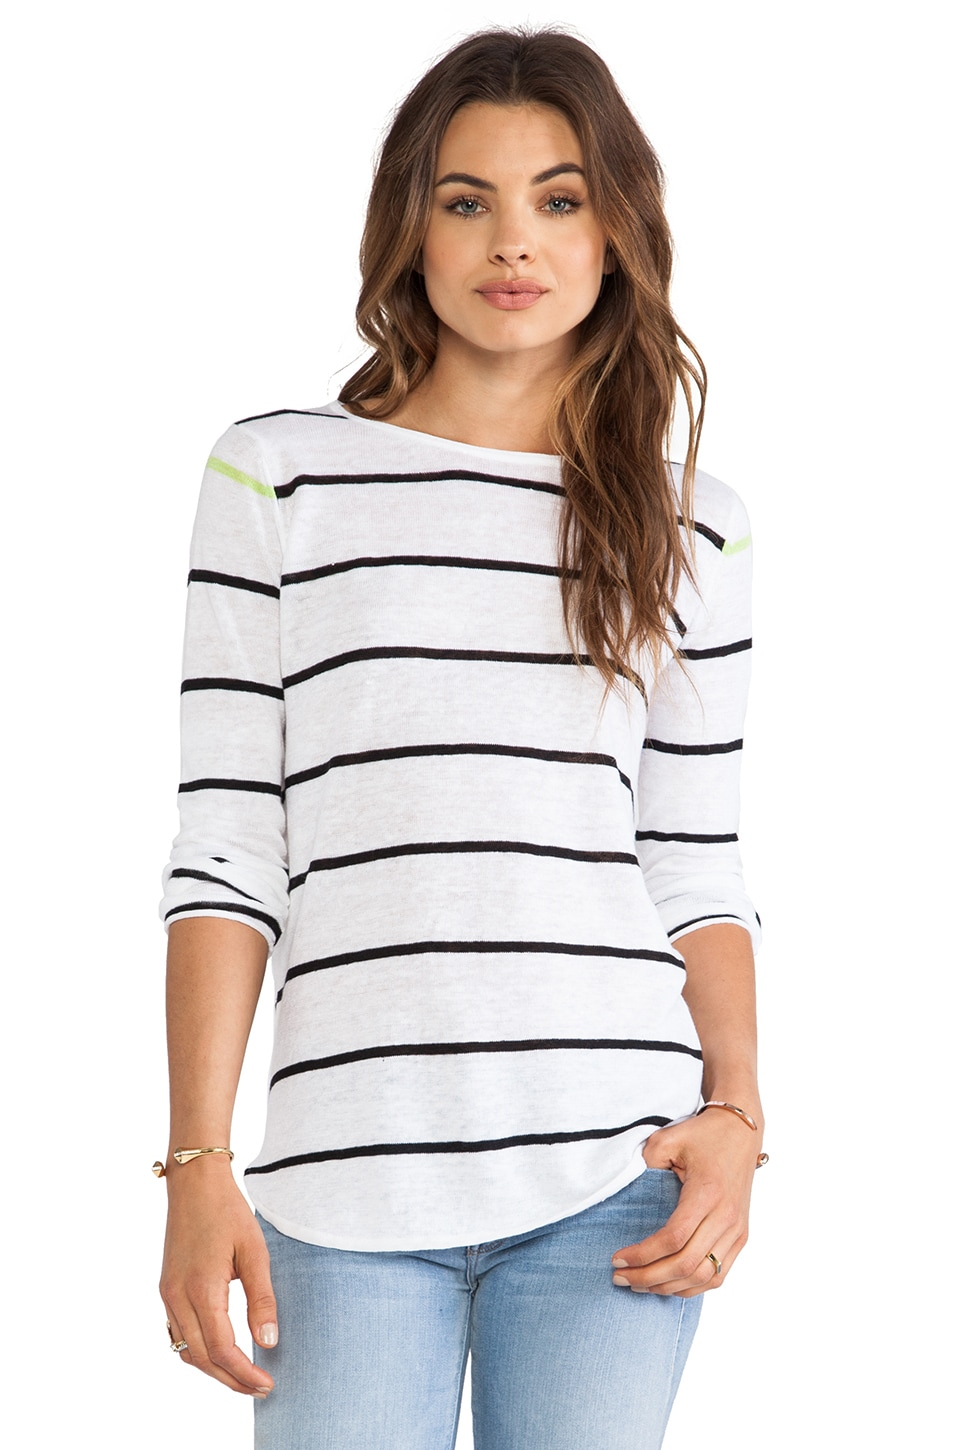 360 Sweater Shy Striped Sweater in White & Black